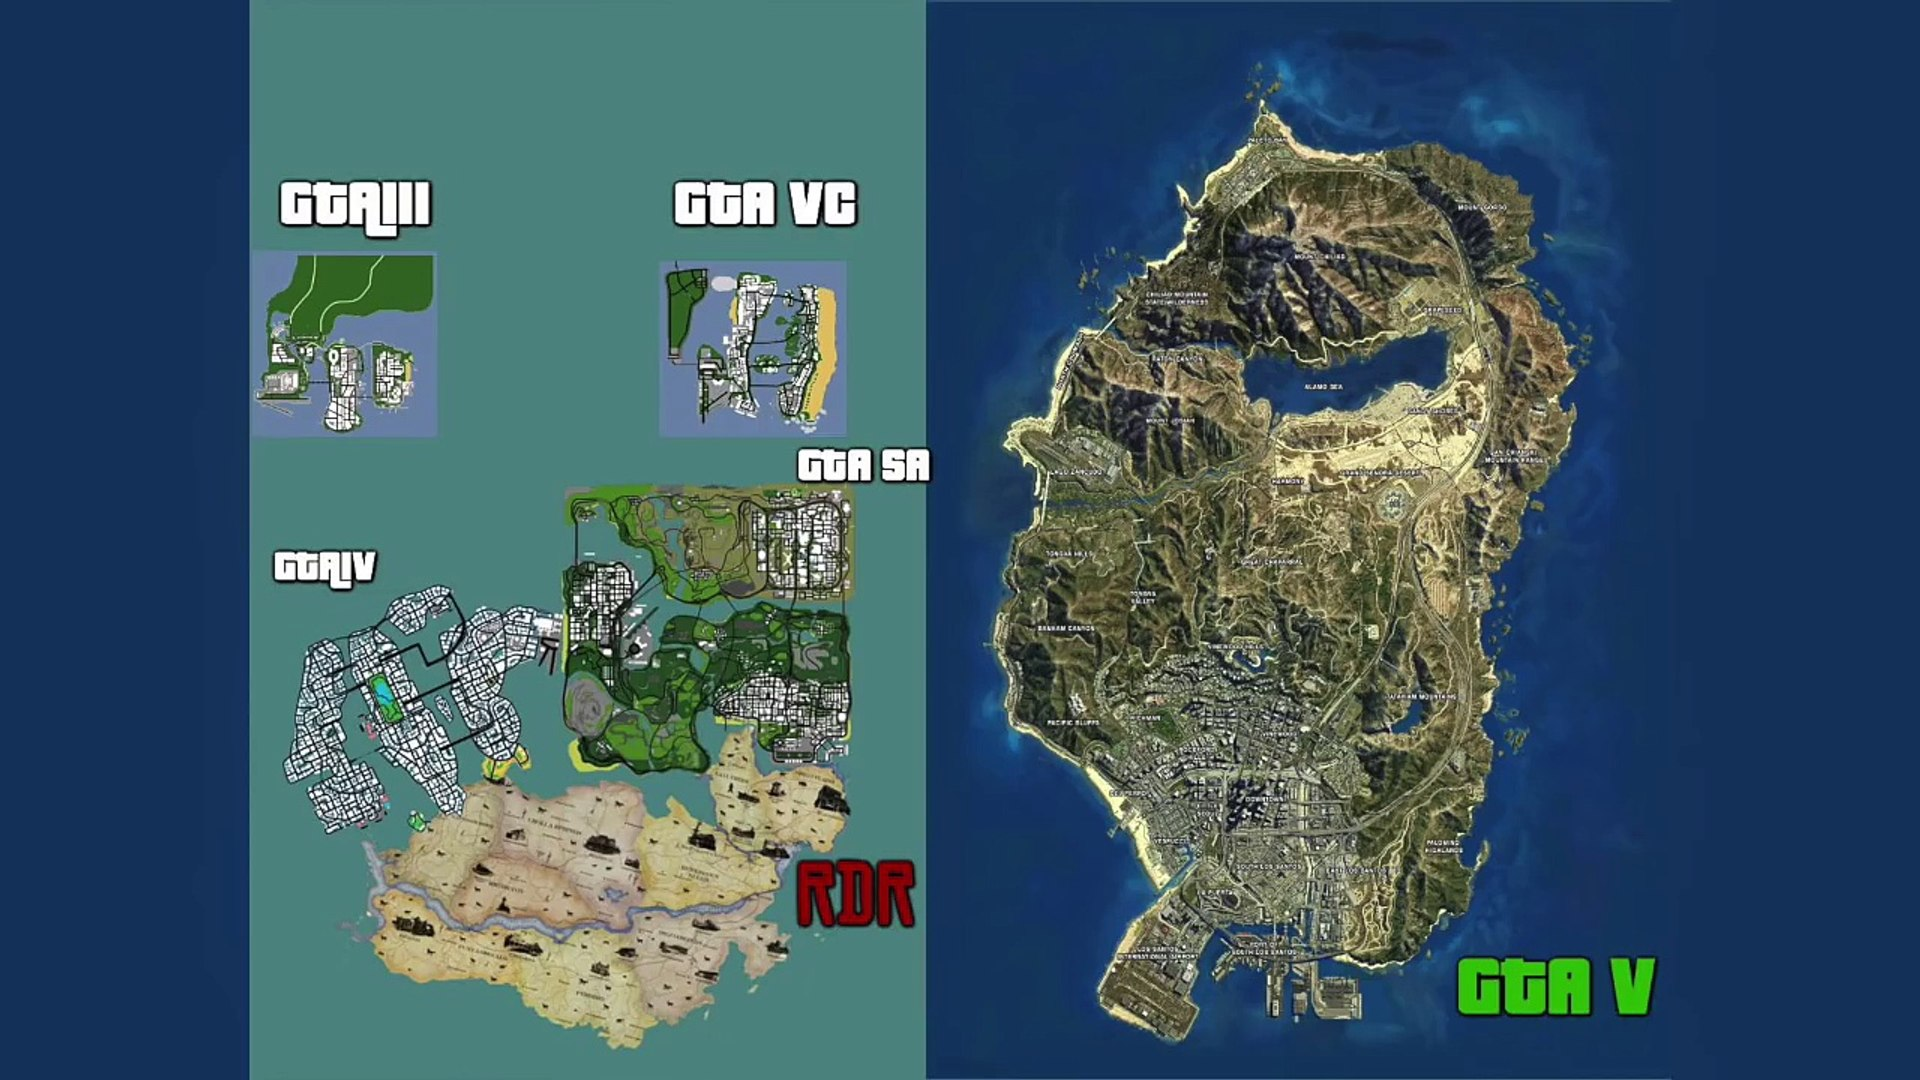 Is The GTA 5 Map Too Small? - Ultimate Los Santos Map Comparison To Grand  Theft Auto Games & MORE!